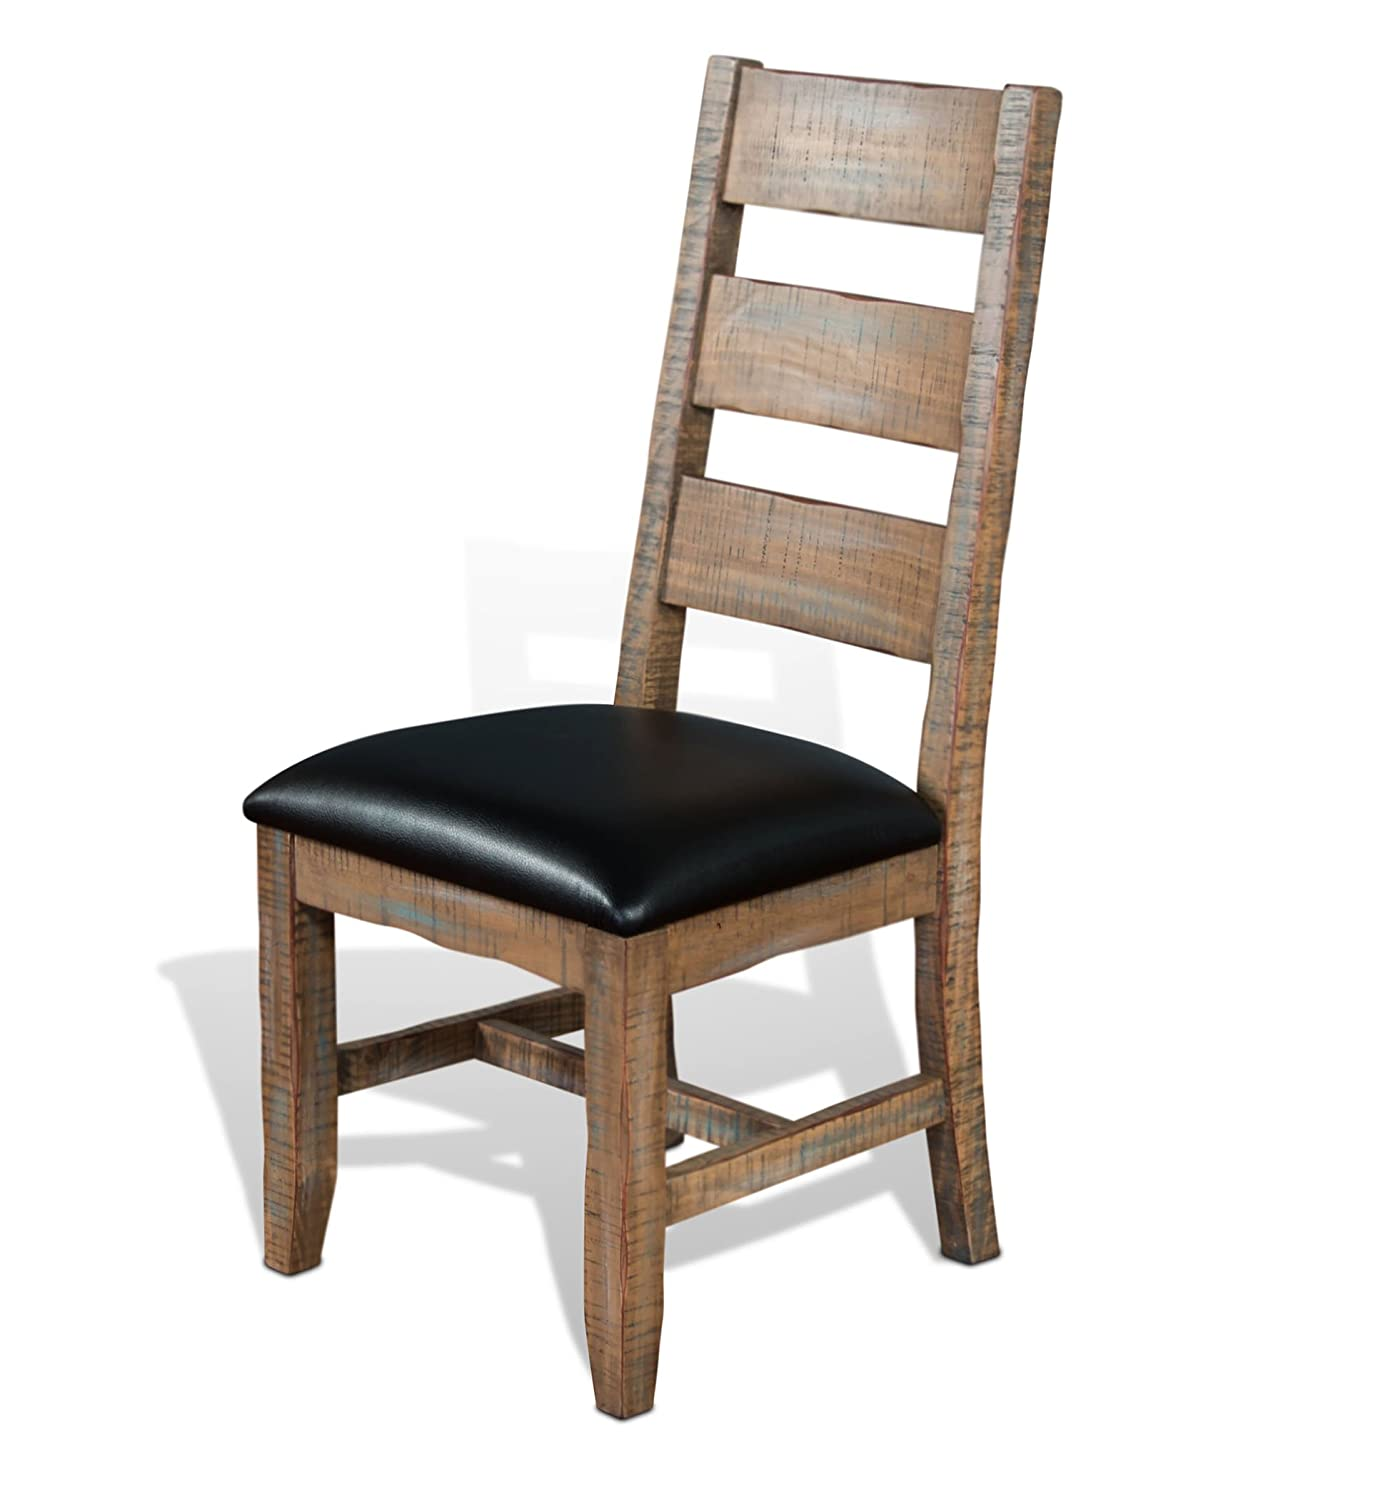 Amazon.com - Sunny Designs Puebla Ladder Back Dining Chair in Driftwood - Chairs  sc 1 st  Amazon.com & Amazon.com - Sunny Designs Puebla Ladder Back Dining Chair in ...